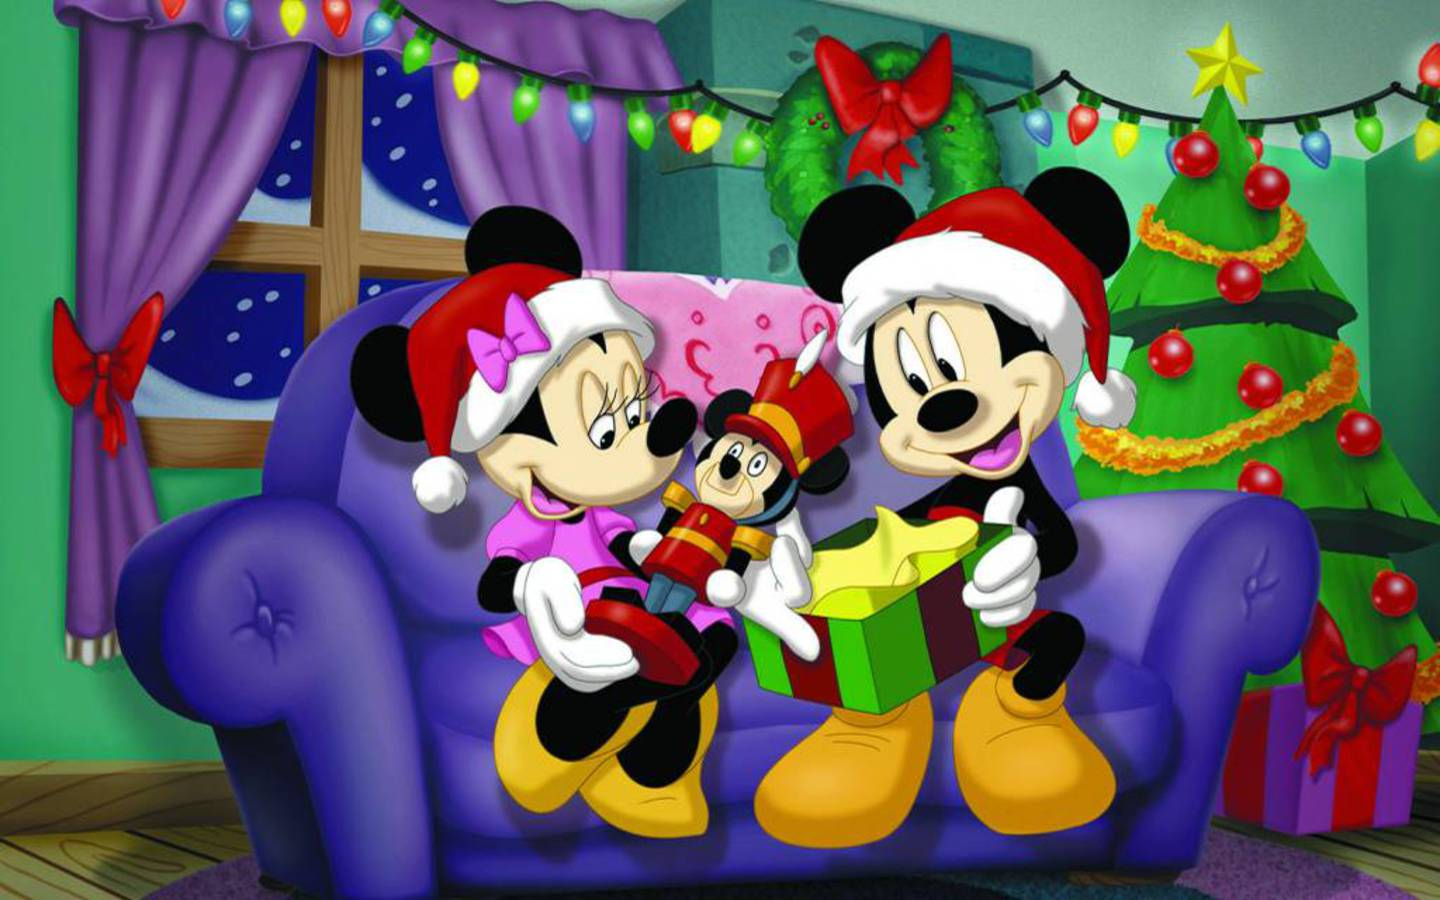 Cute Disney Christmas Desktop Wallpaper wallpaper Wallpapers   HD 1440x900